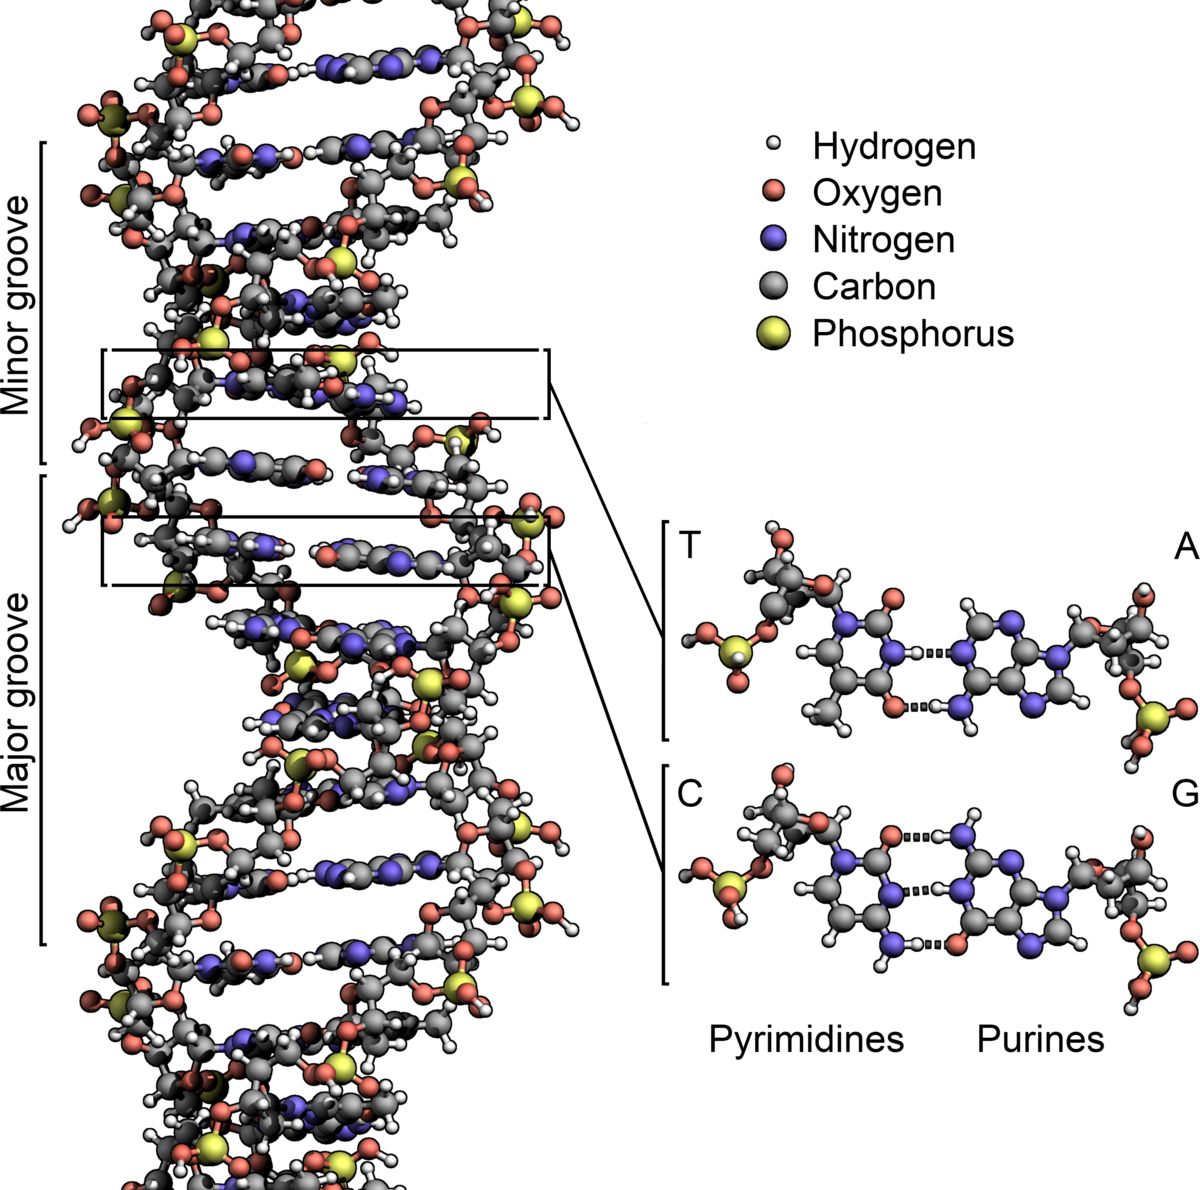 Dna wikipedia den frie encyklop di for What is the significance of pi s unusual name